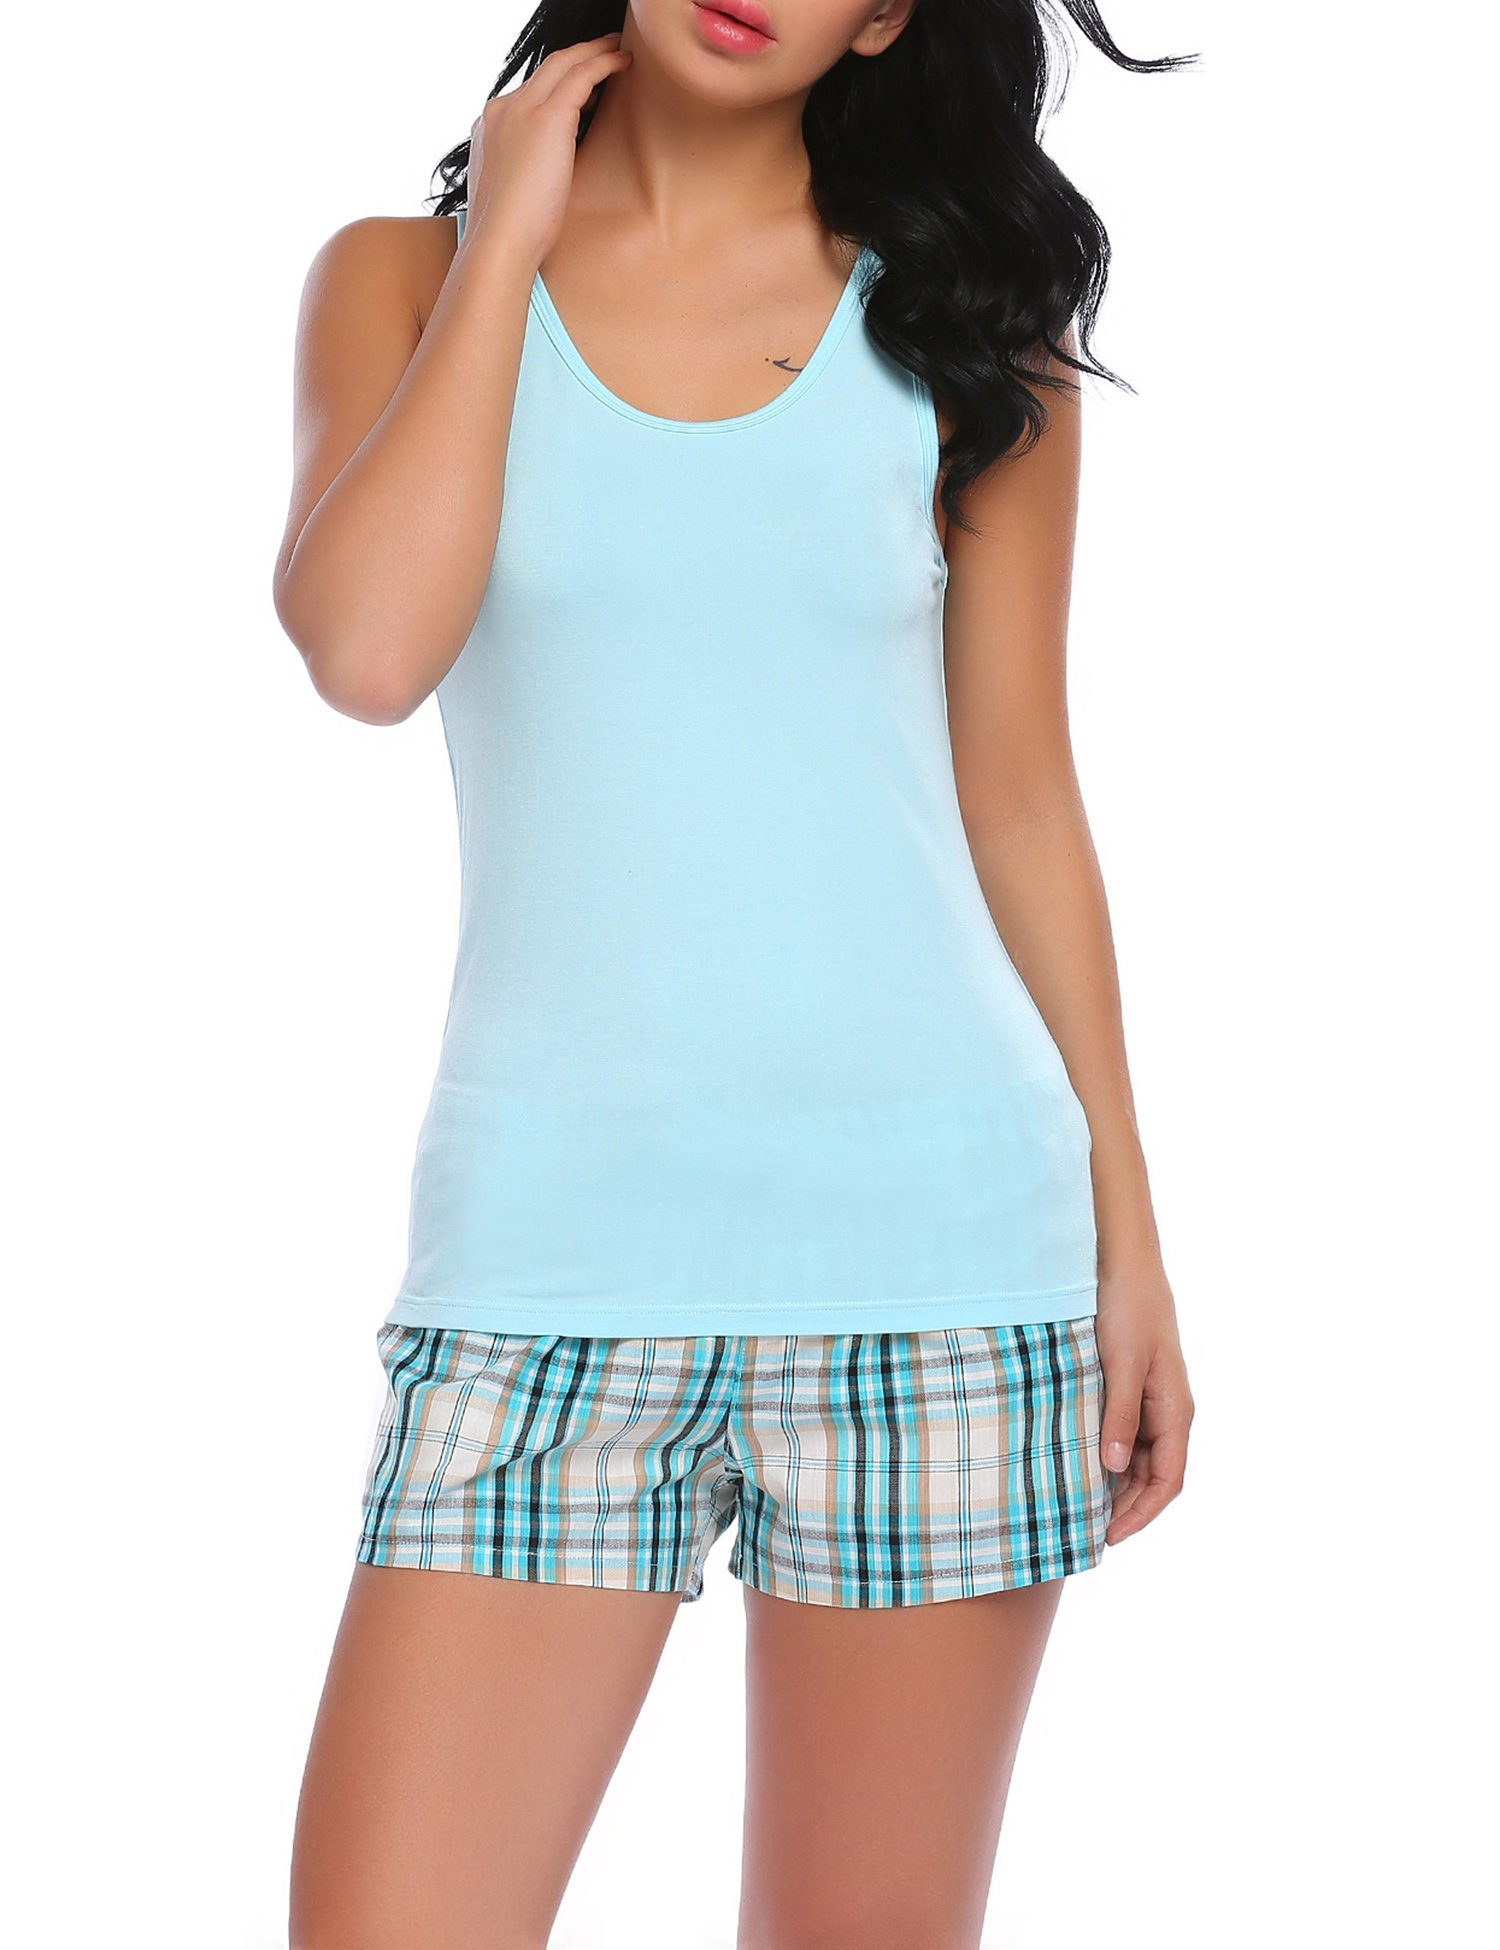 Ekouaer Comfortable Cami Pajama Shorts Set Cotton Sleepwear Two Piece For Women